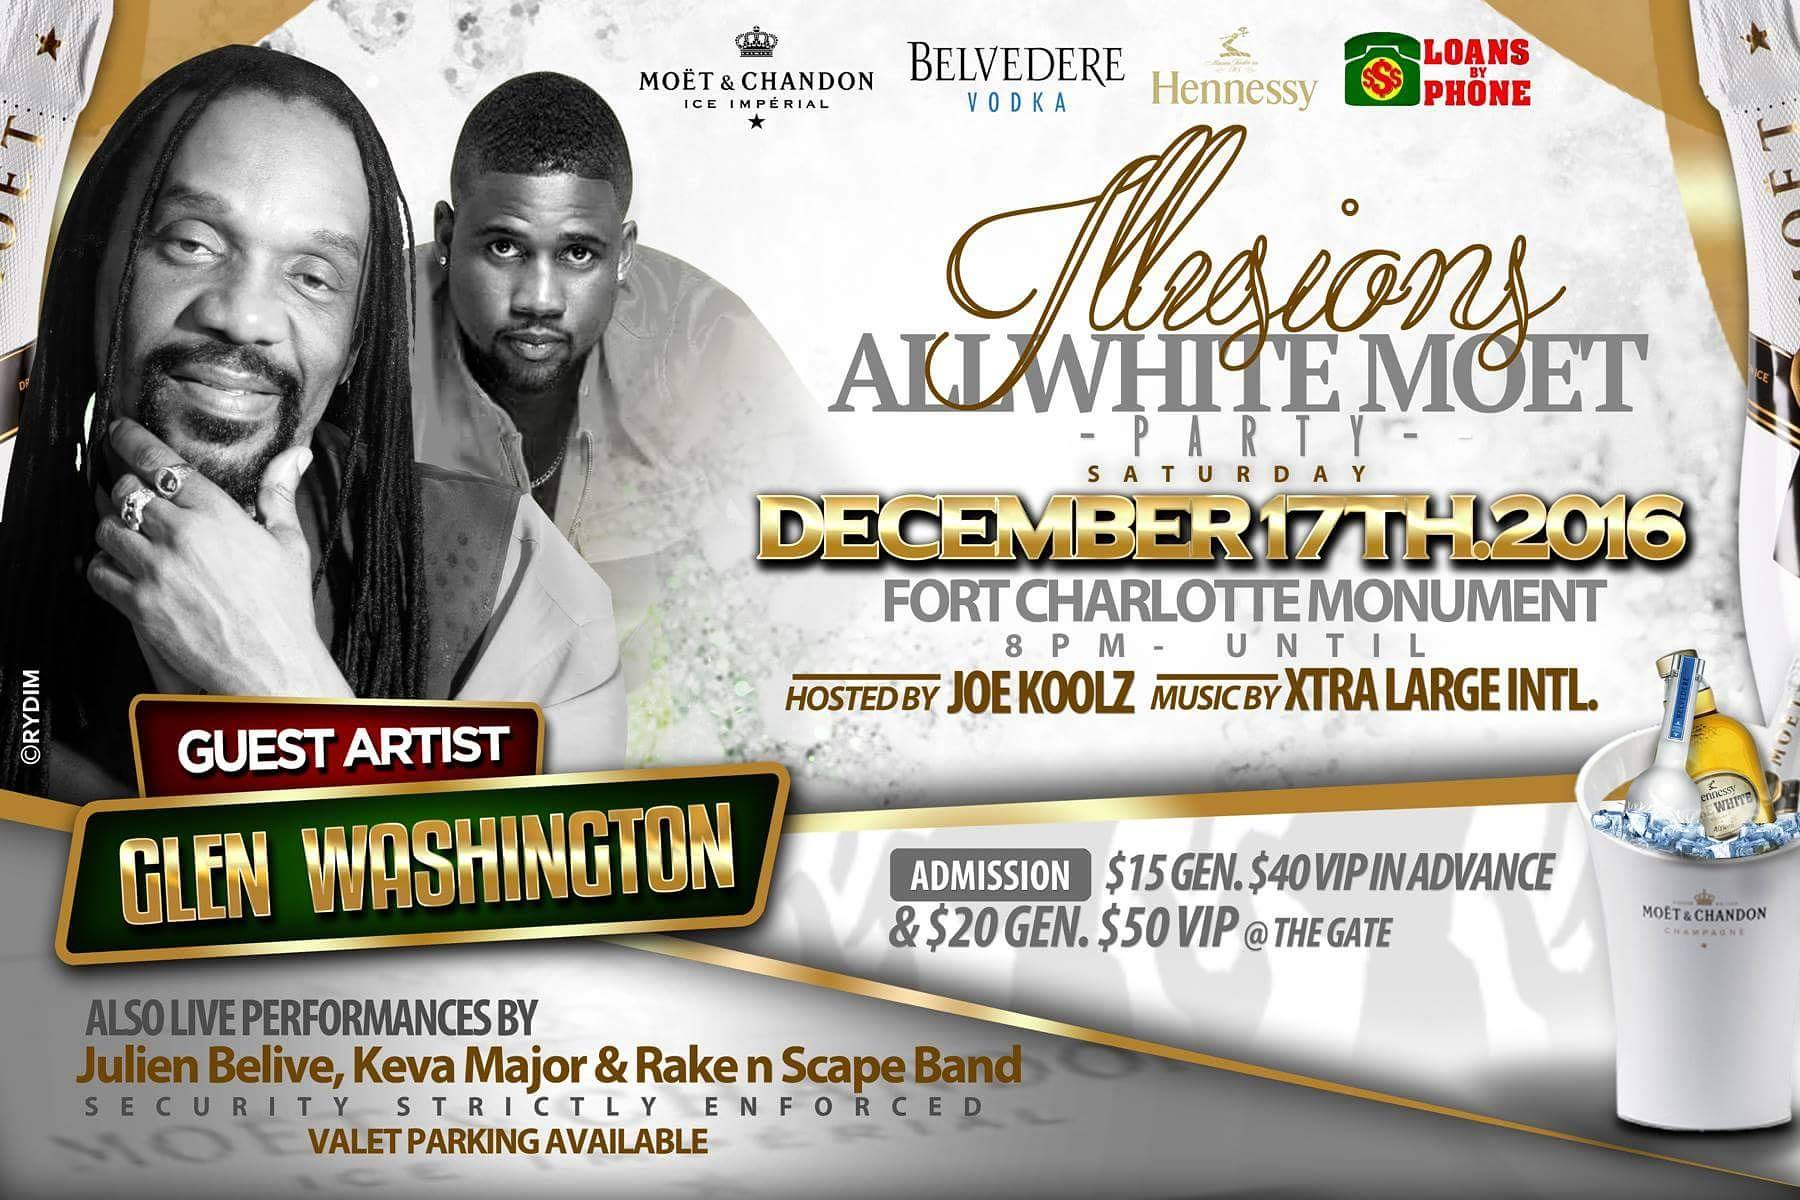 Illusions All White Moet Party